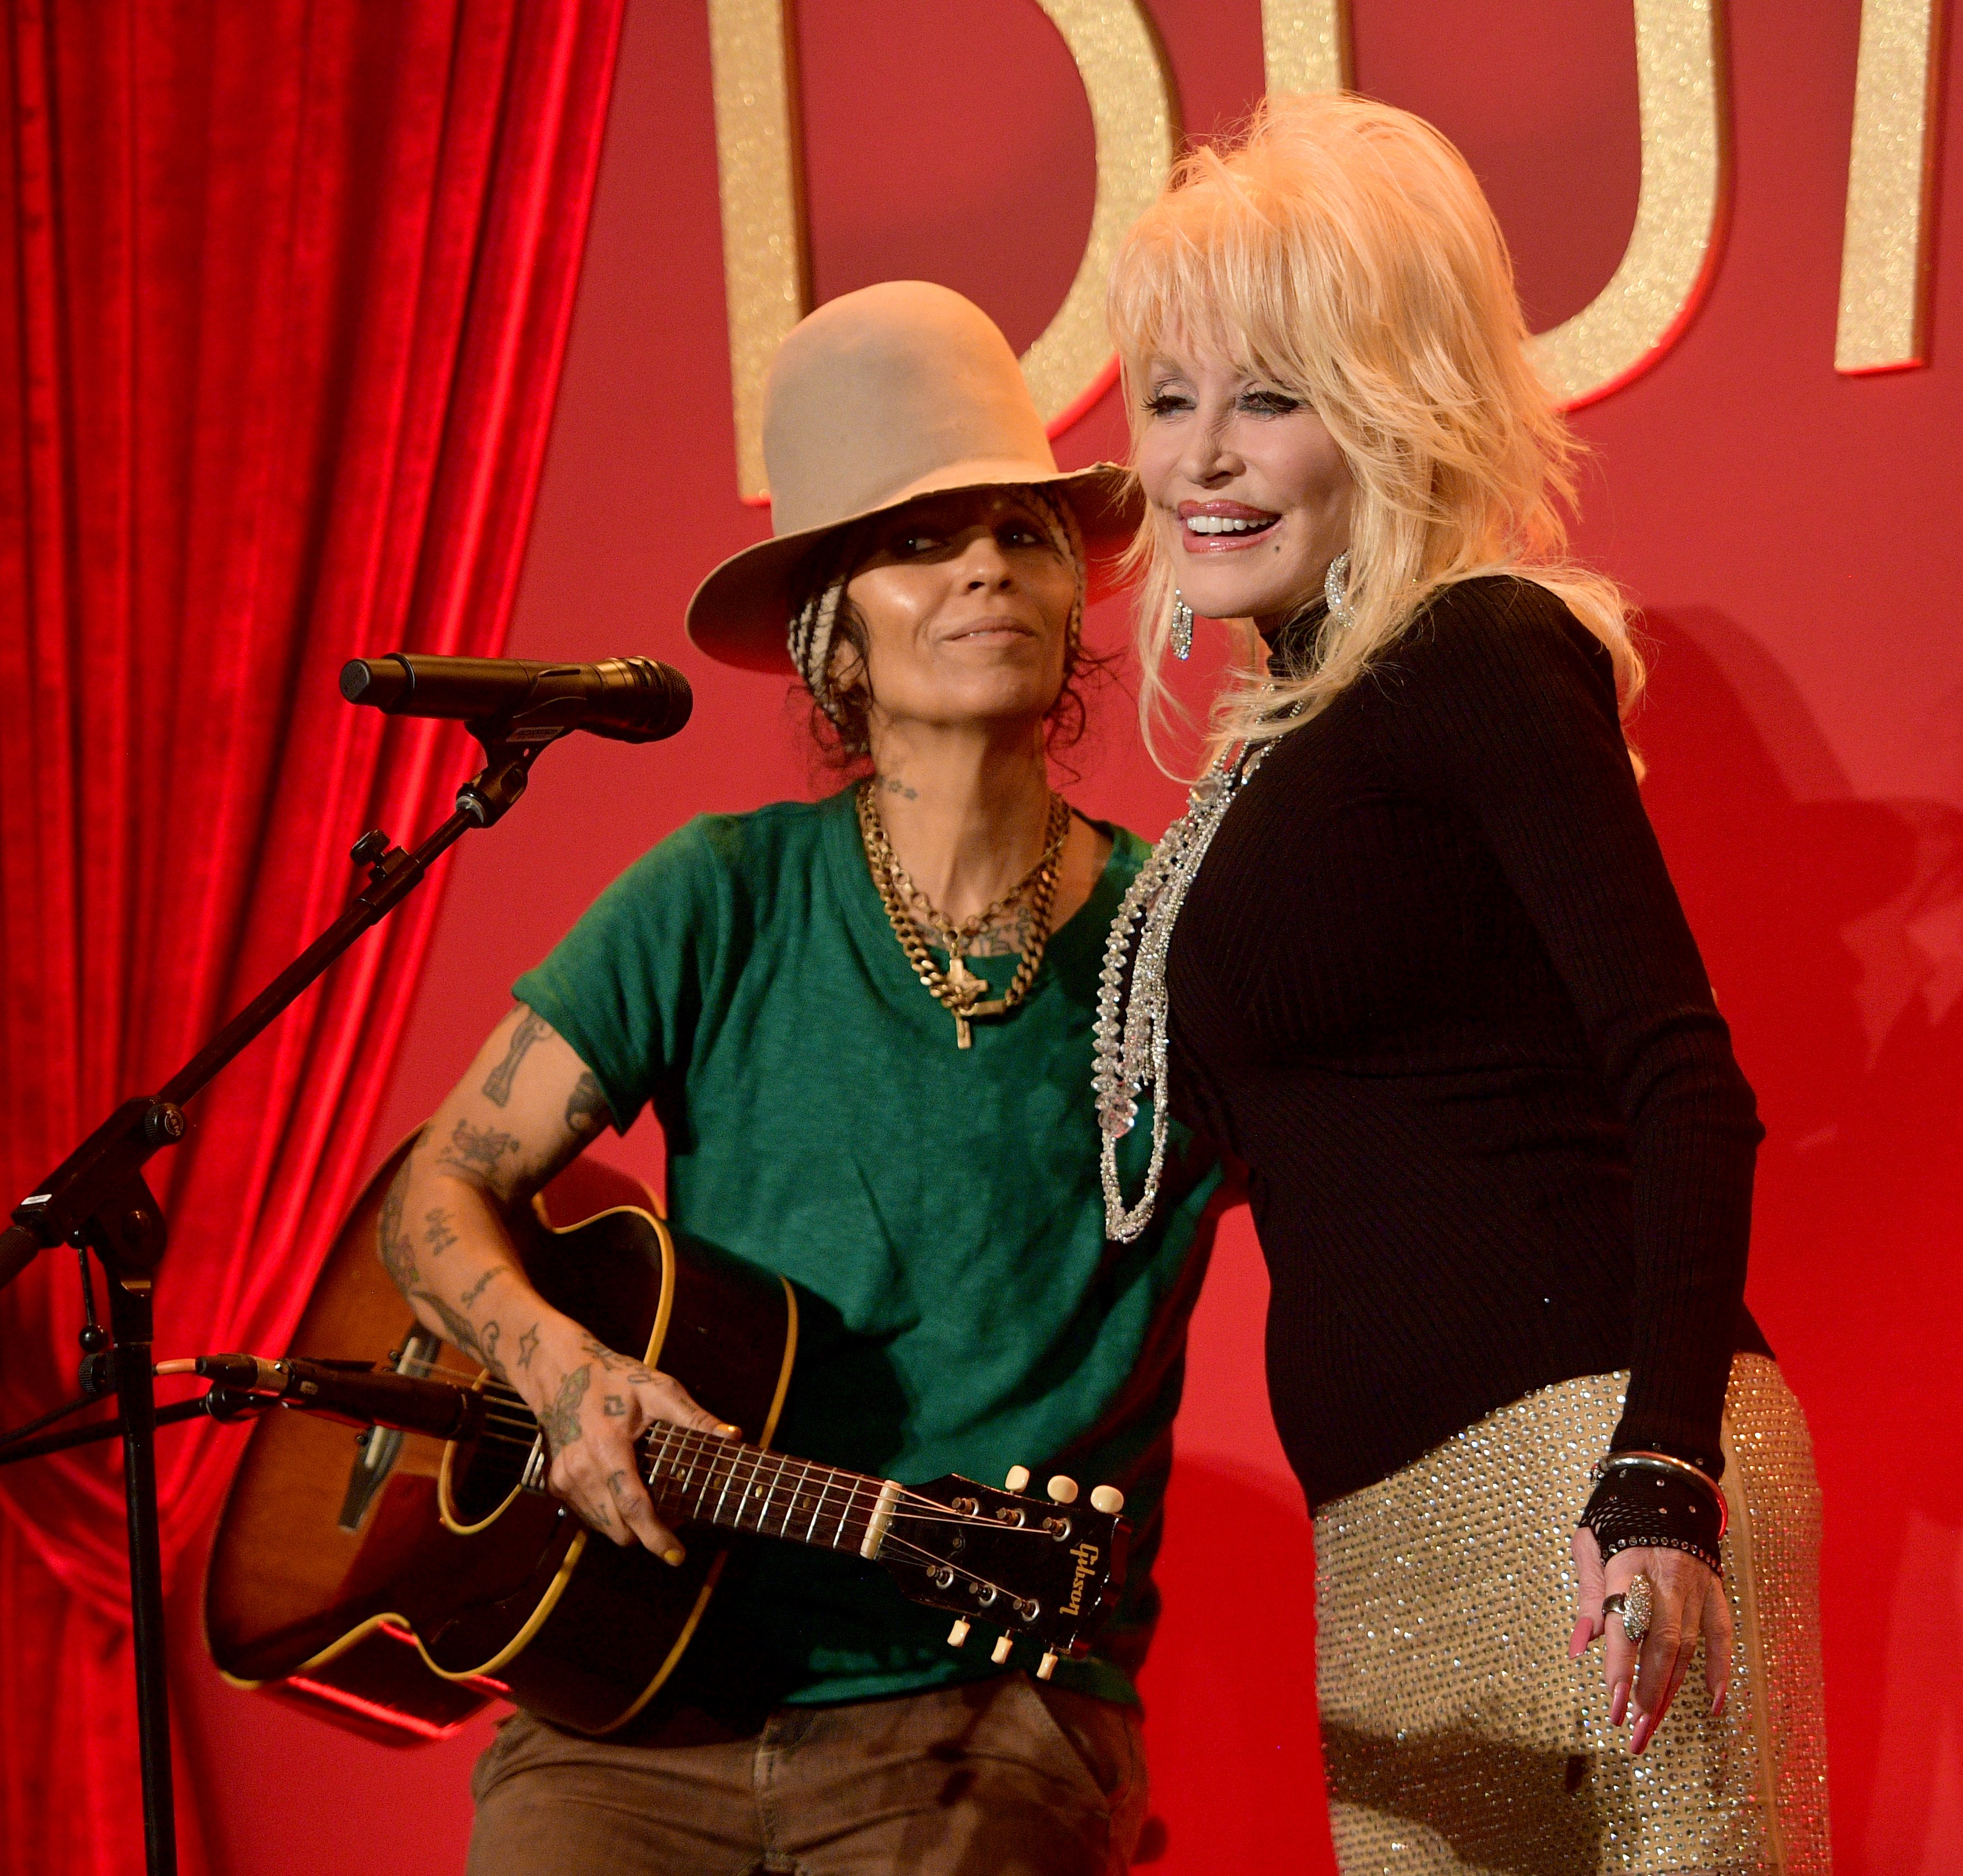 Linda Perry and Dolly. Image Credit: Getty Images